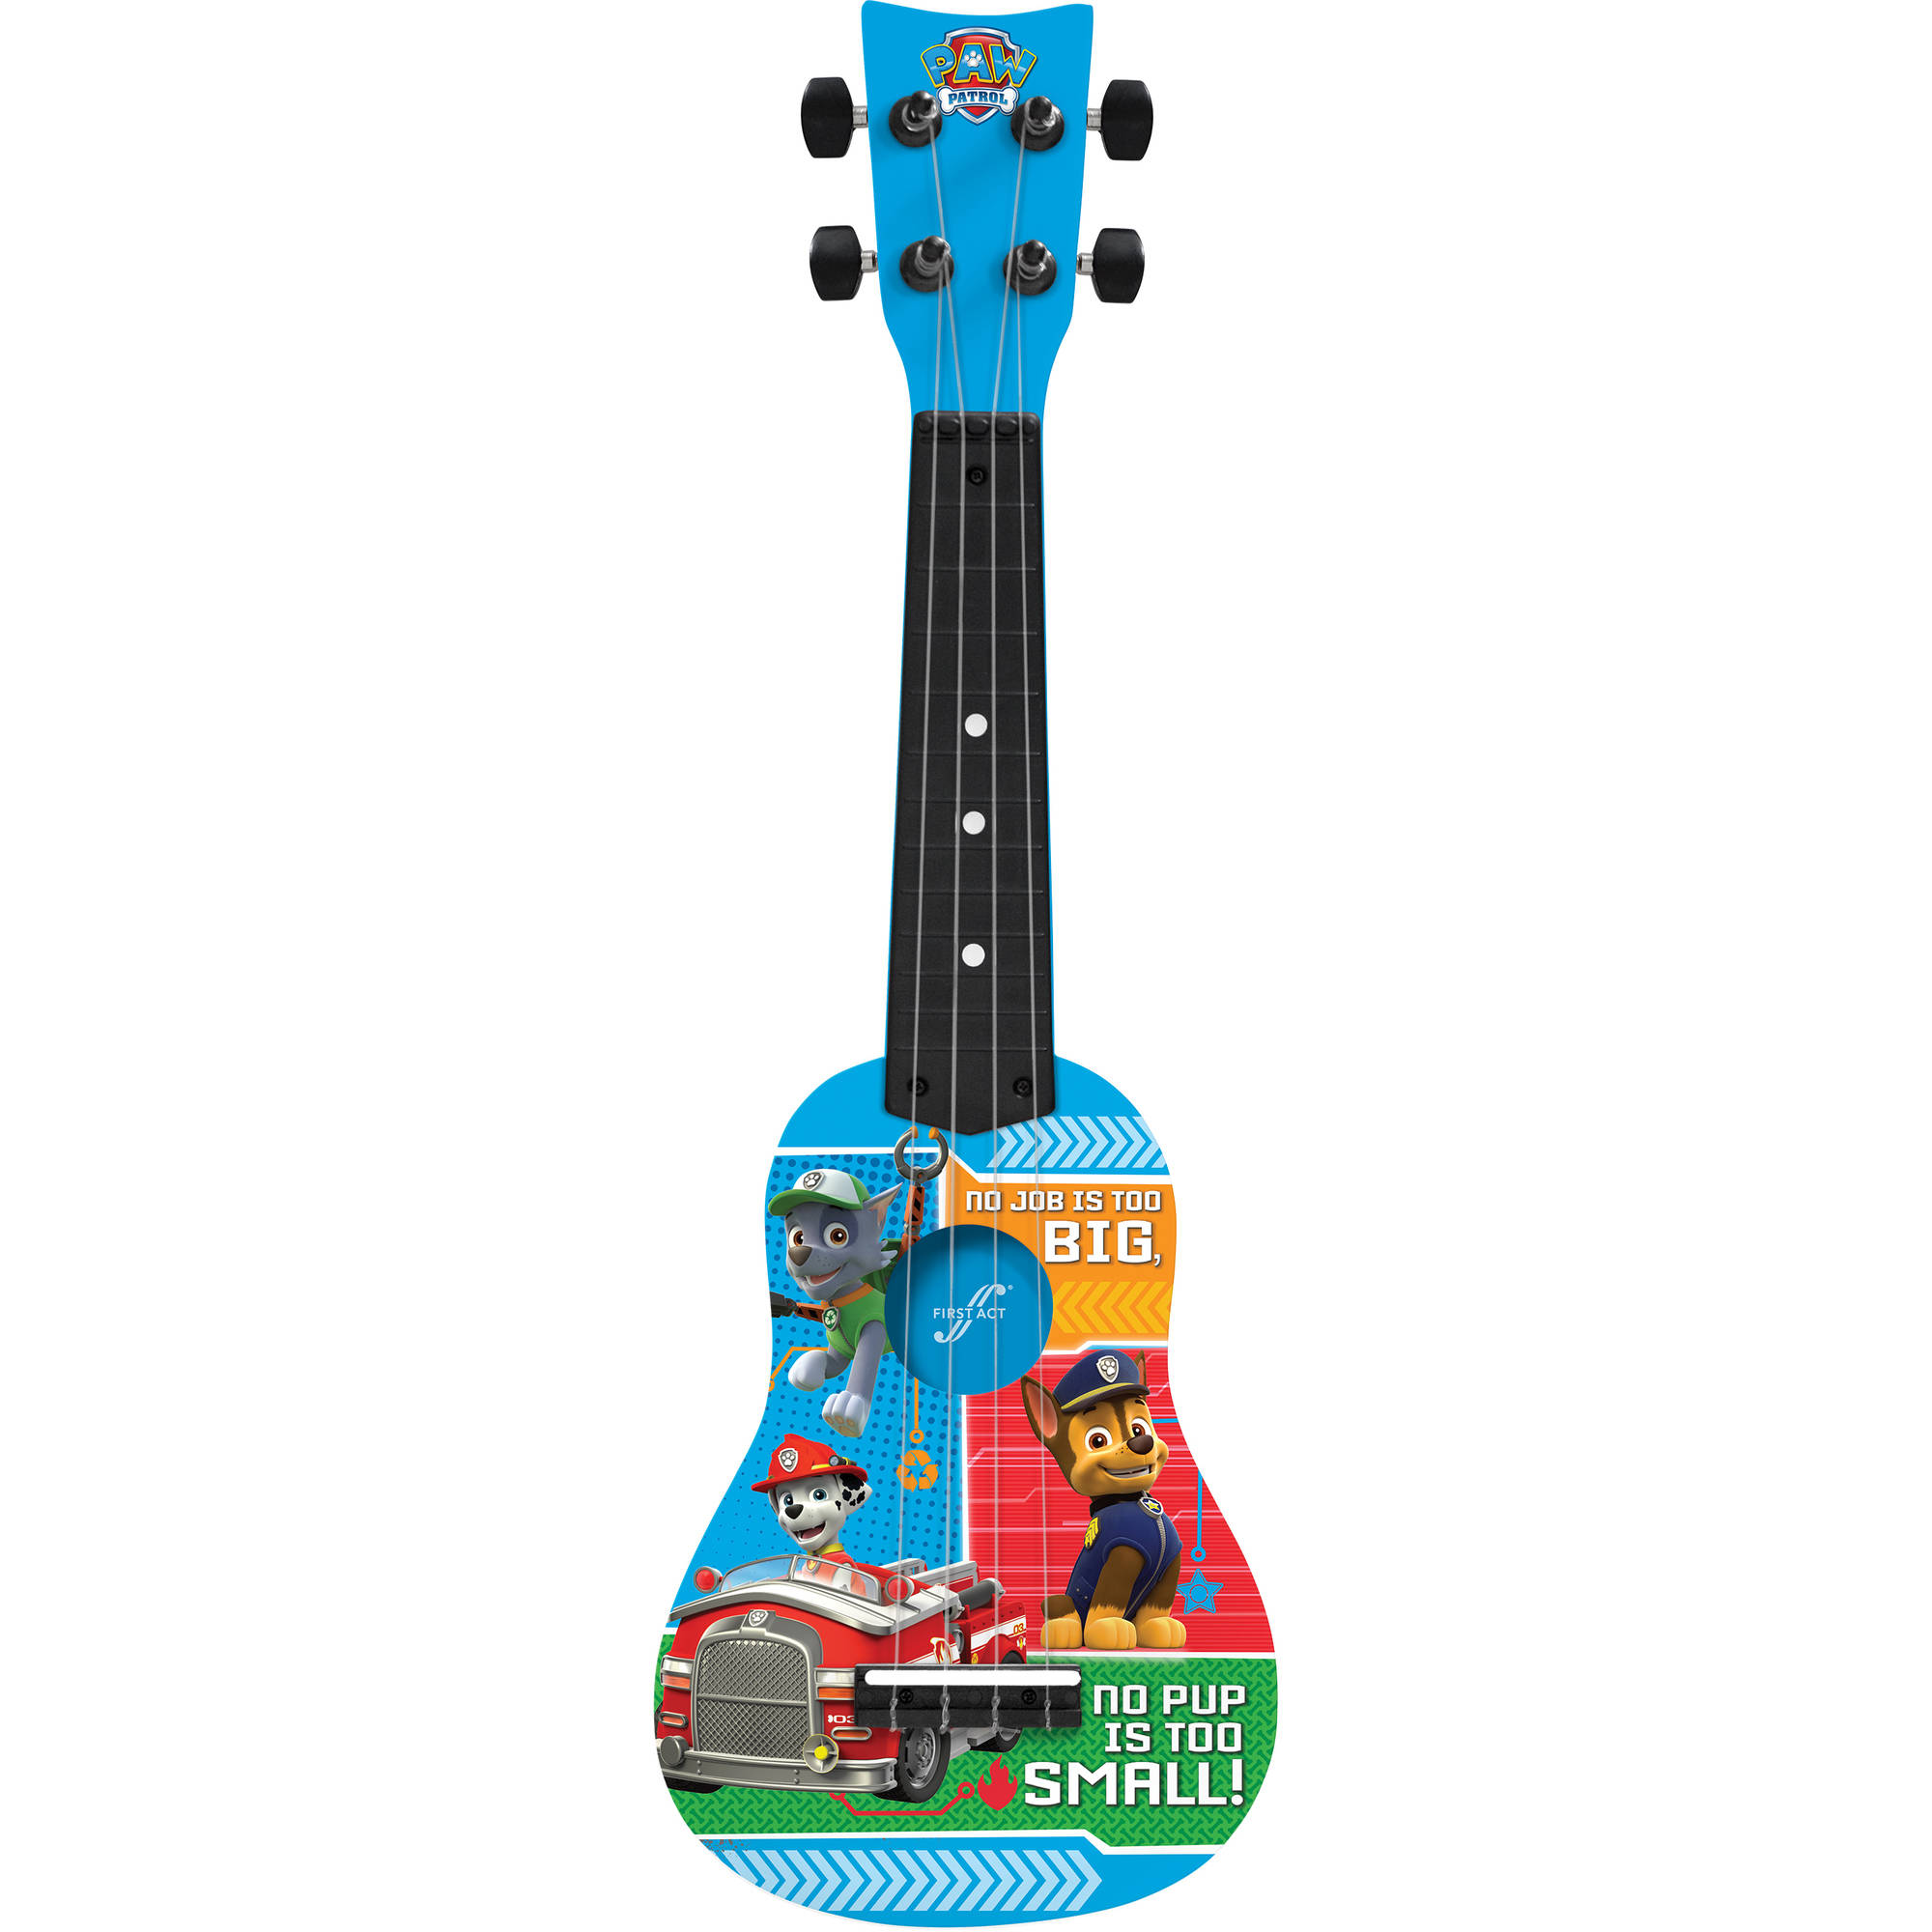 First Act Nickelodeon Paw Patrol Mini Guitar PP286, Blue